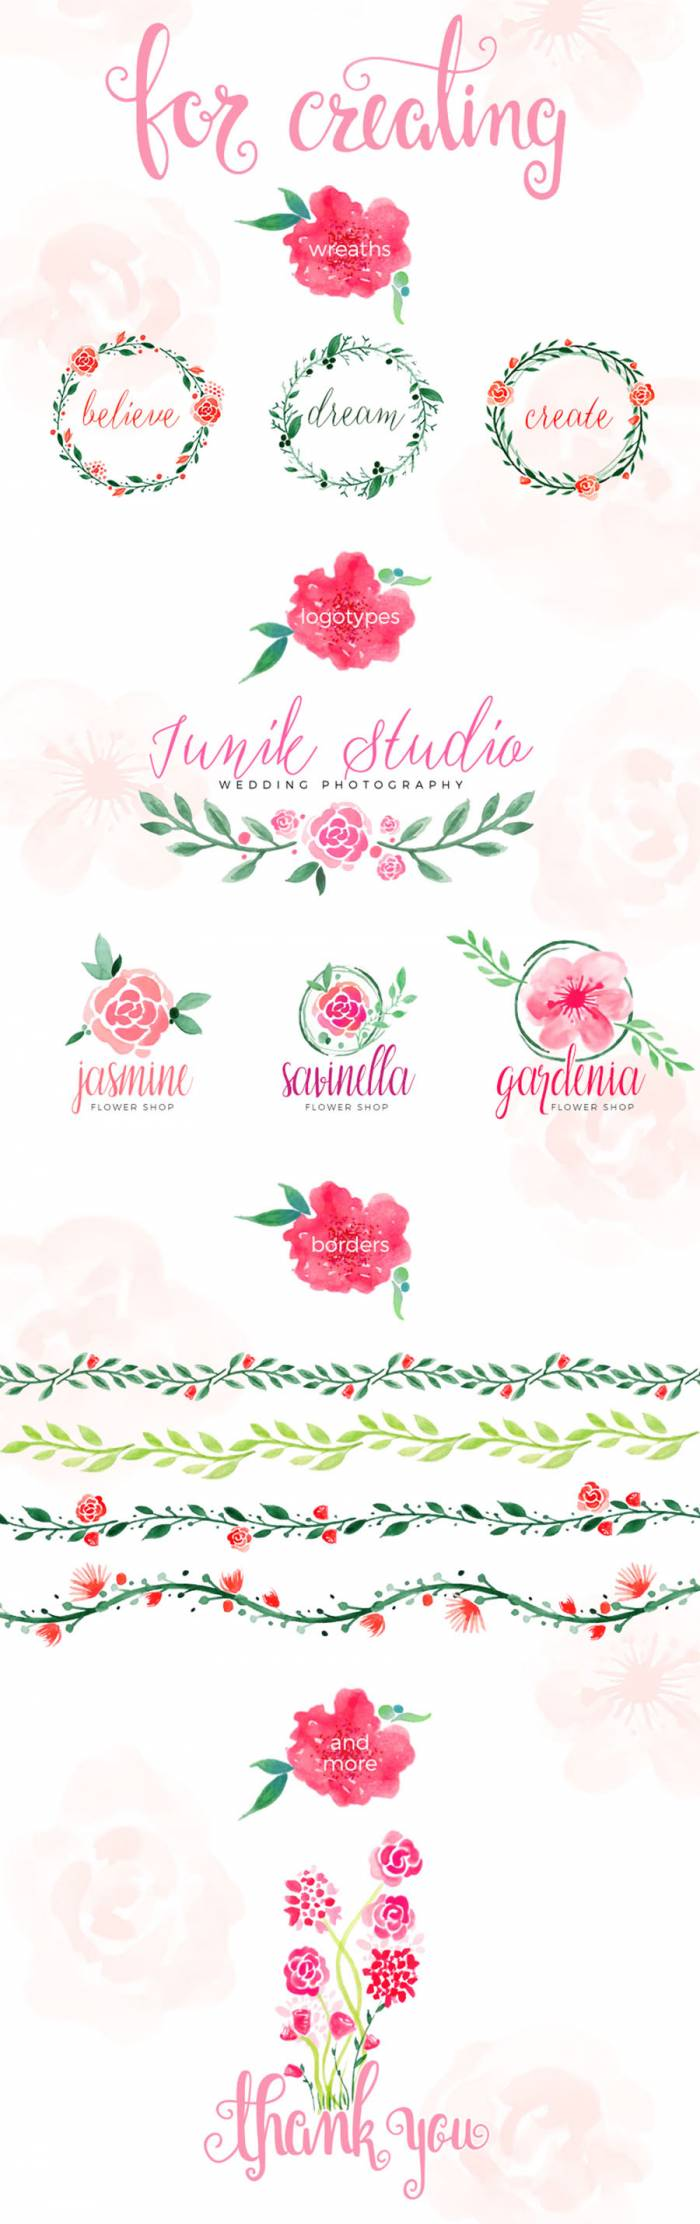 100 Free Watercolor Floral Elements (.Png) скачать бесплатно